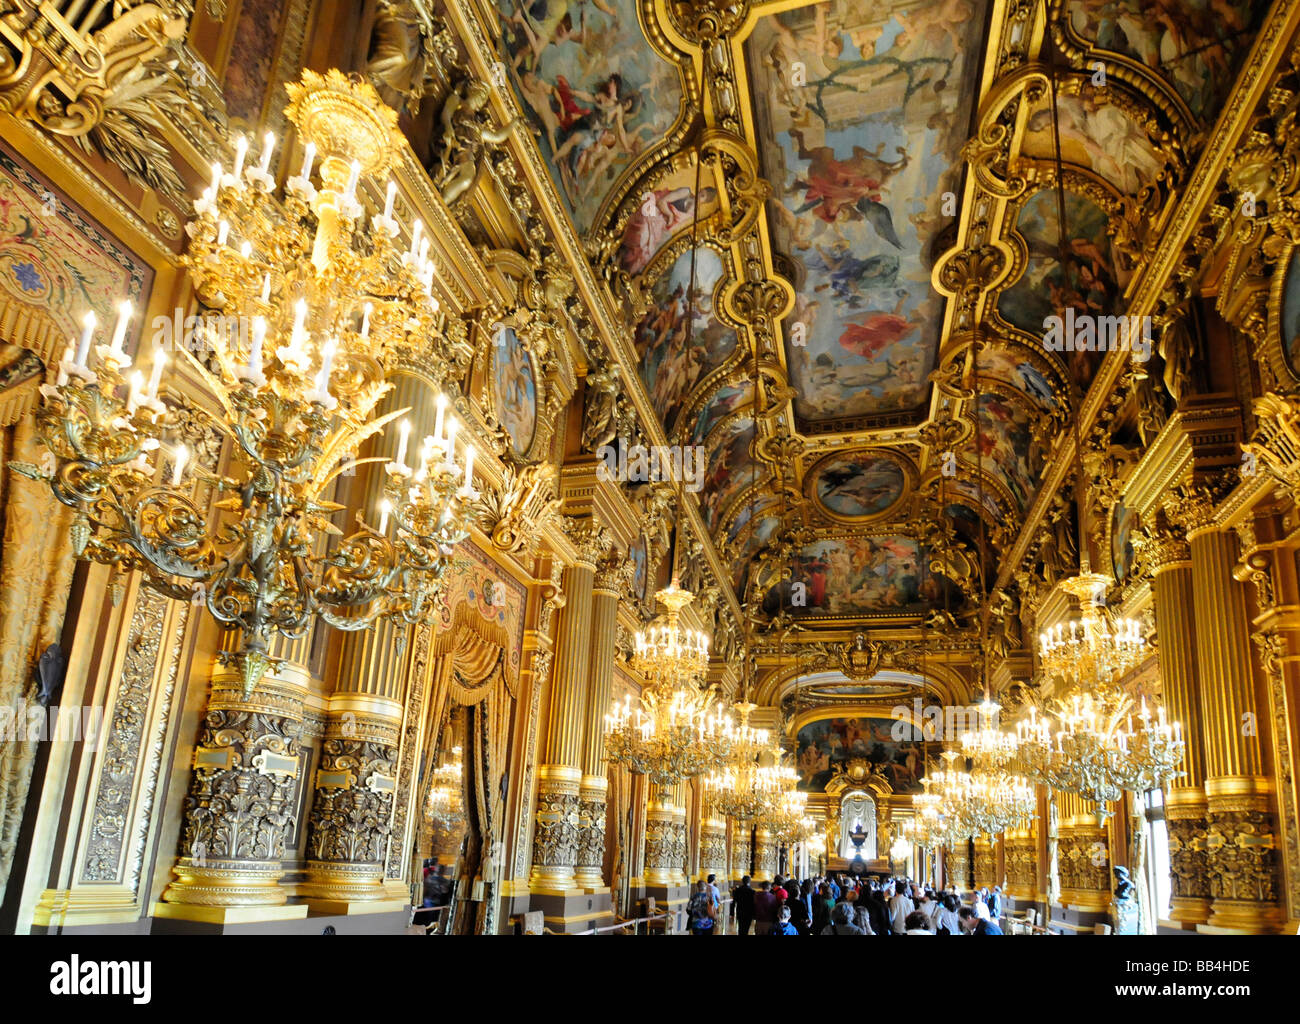 Inside the Grand Foyer of the palais Garnier, the oldest Opera house in Paris, France. - Stock Image